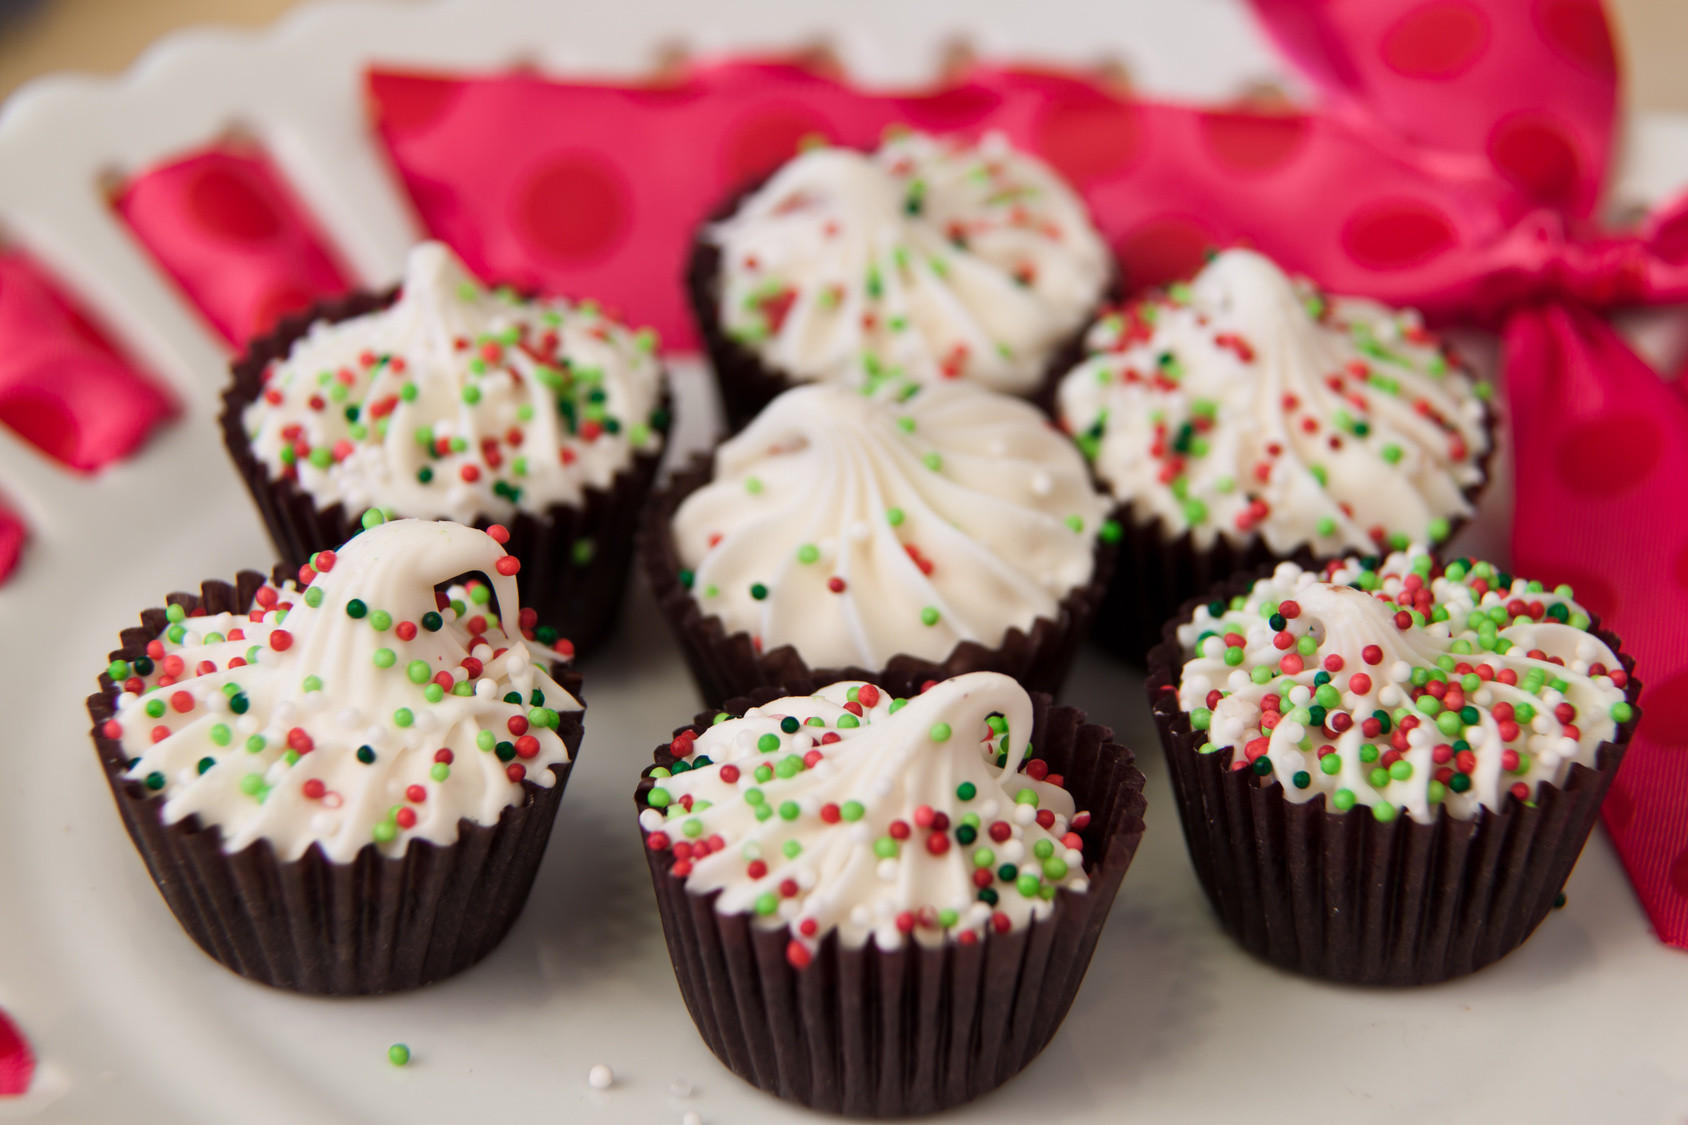 How To Transport Cupcakes  Transporting Cupcakes A Farmers Almanac Tip